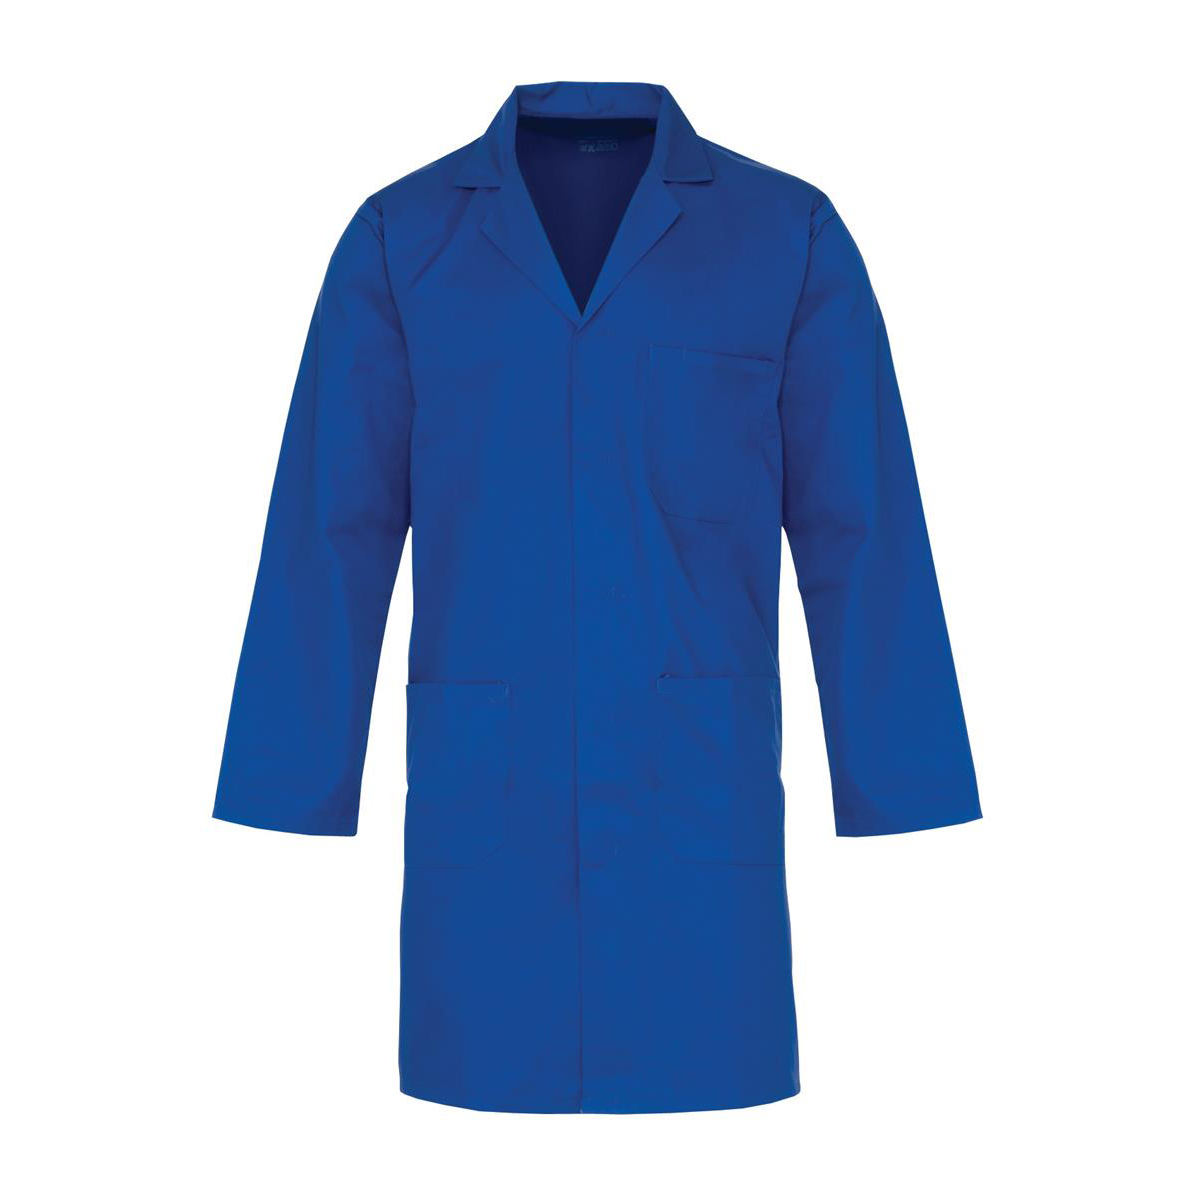 Supertouch Lab Coat Polycotton with 3 Pockets Medium Navy Ref 57012 *Approx 3 Day Leadtime*